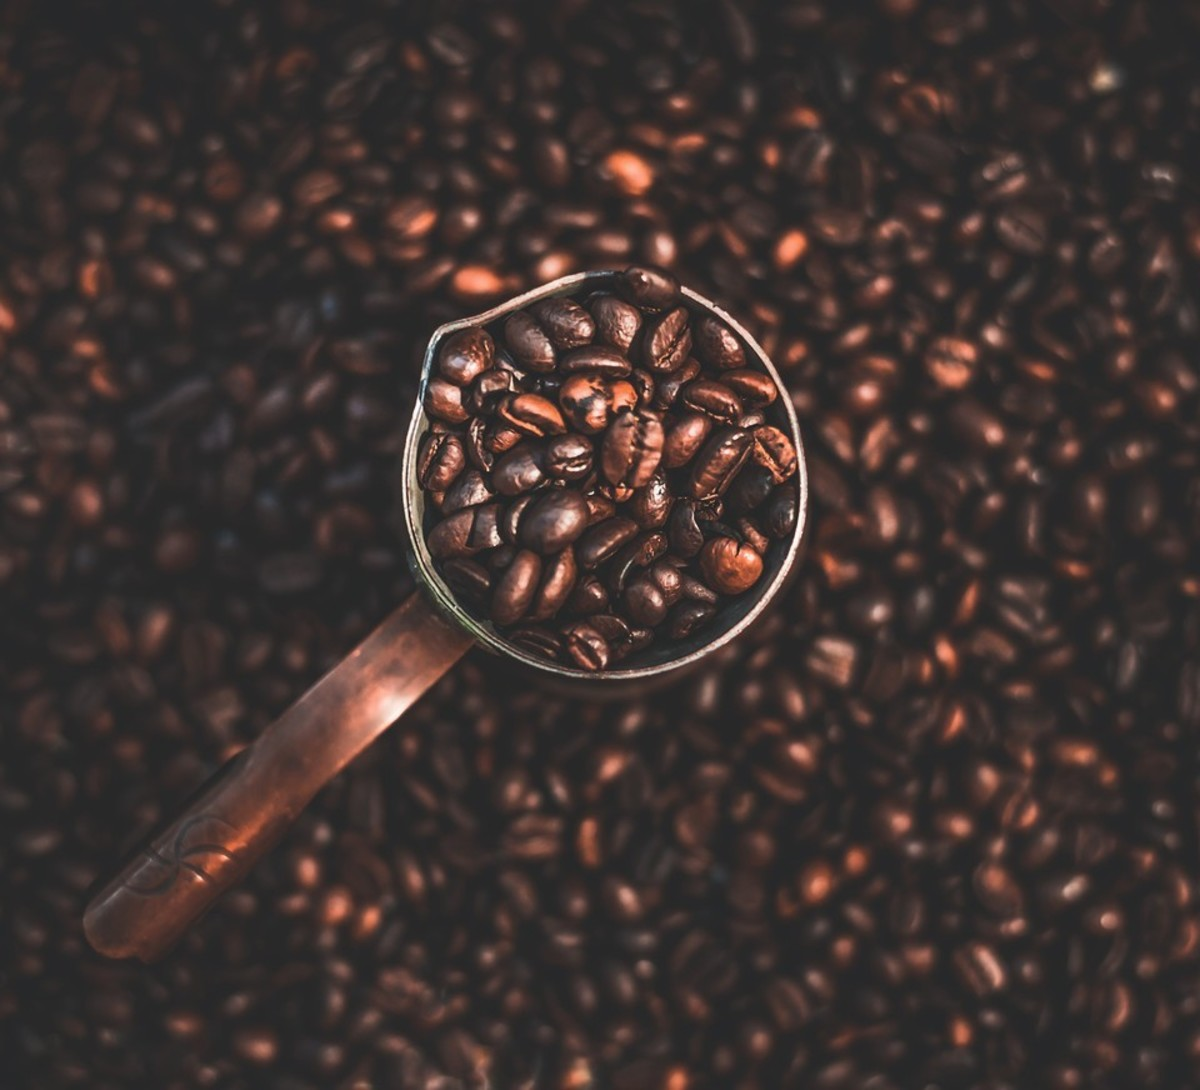 A coffee bean is actually a seed. When dried, roasted and ground, it's used to brew coffee.